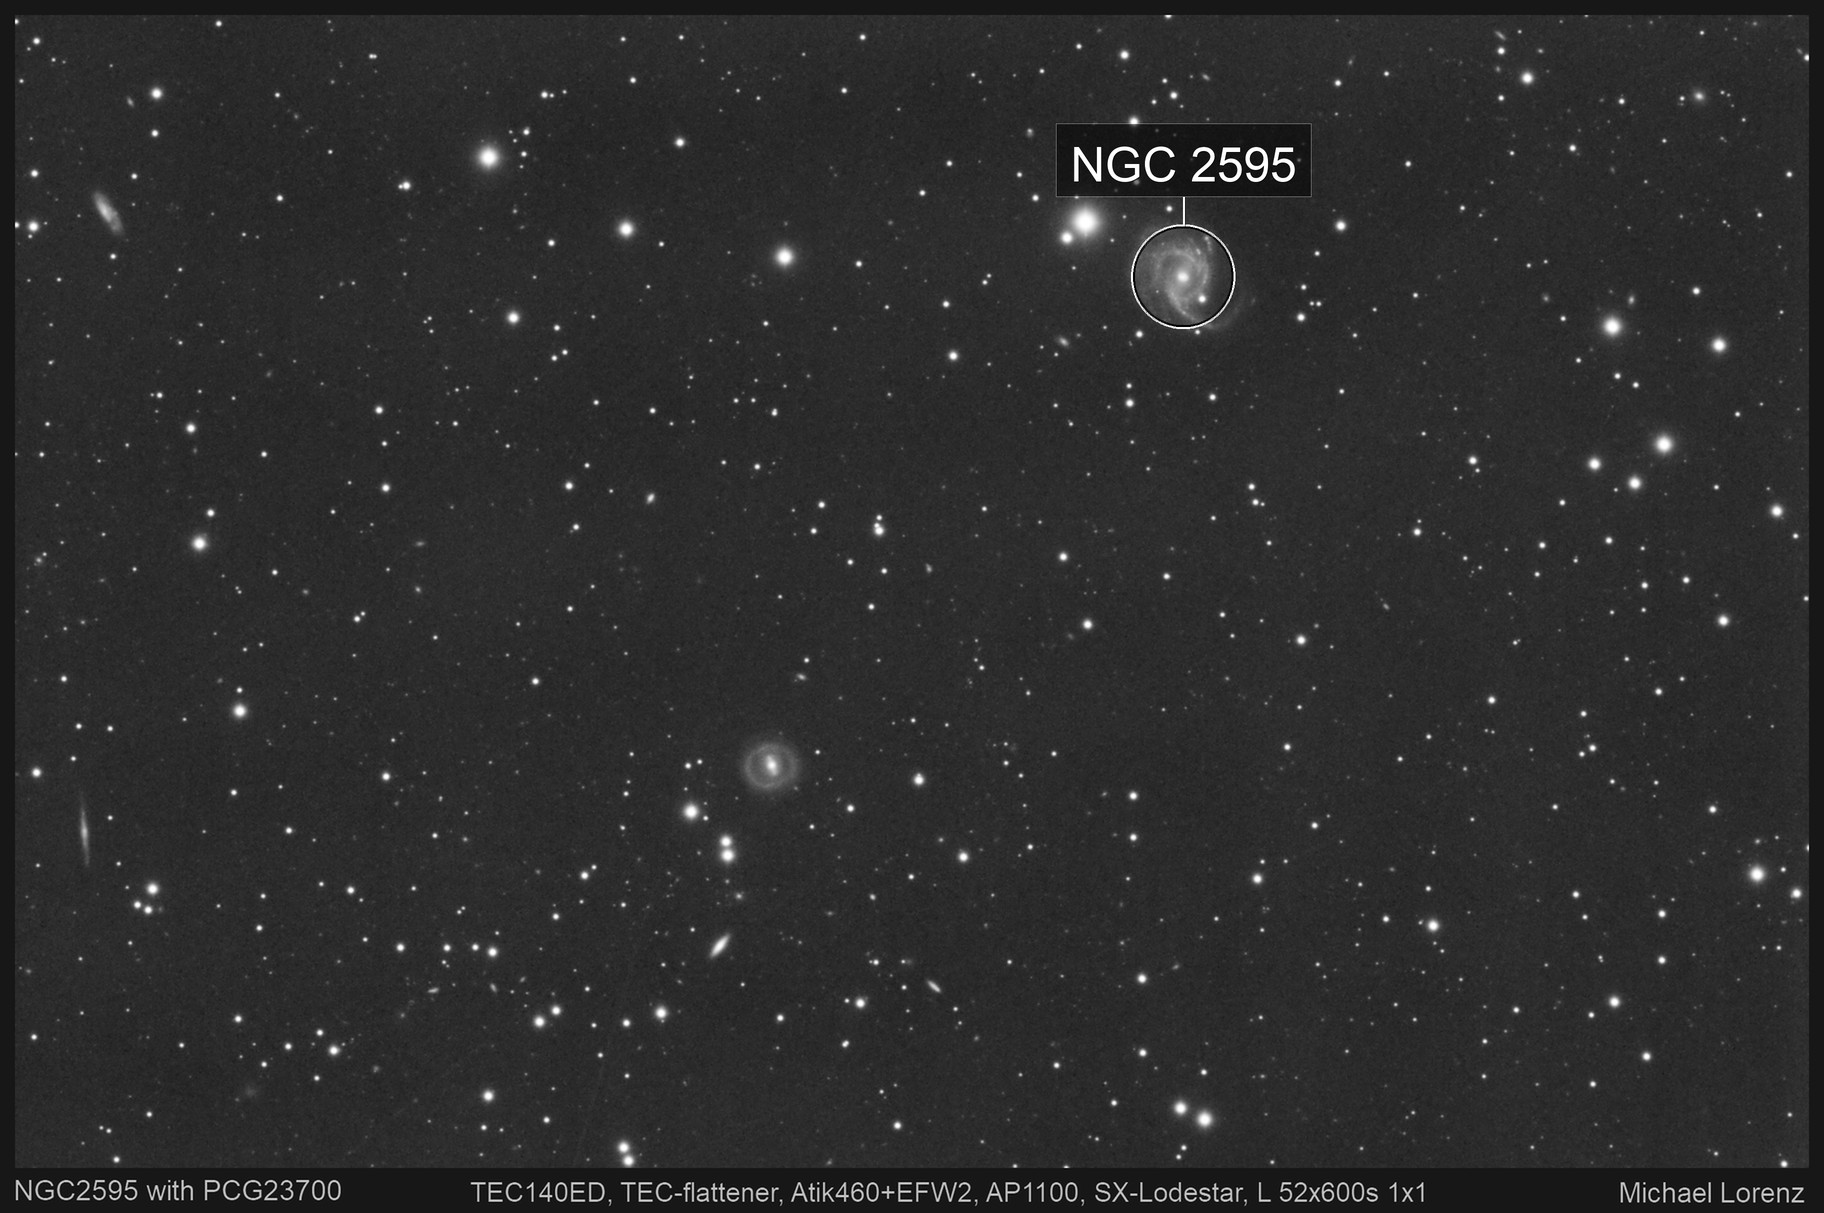 NGC2595 with ring galaxy PGC23700